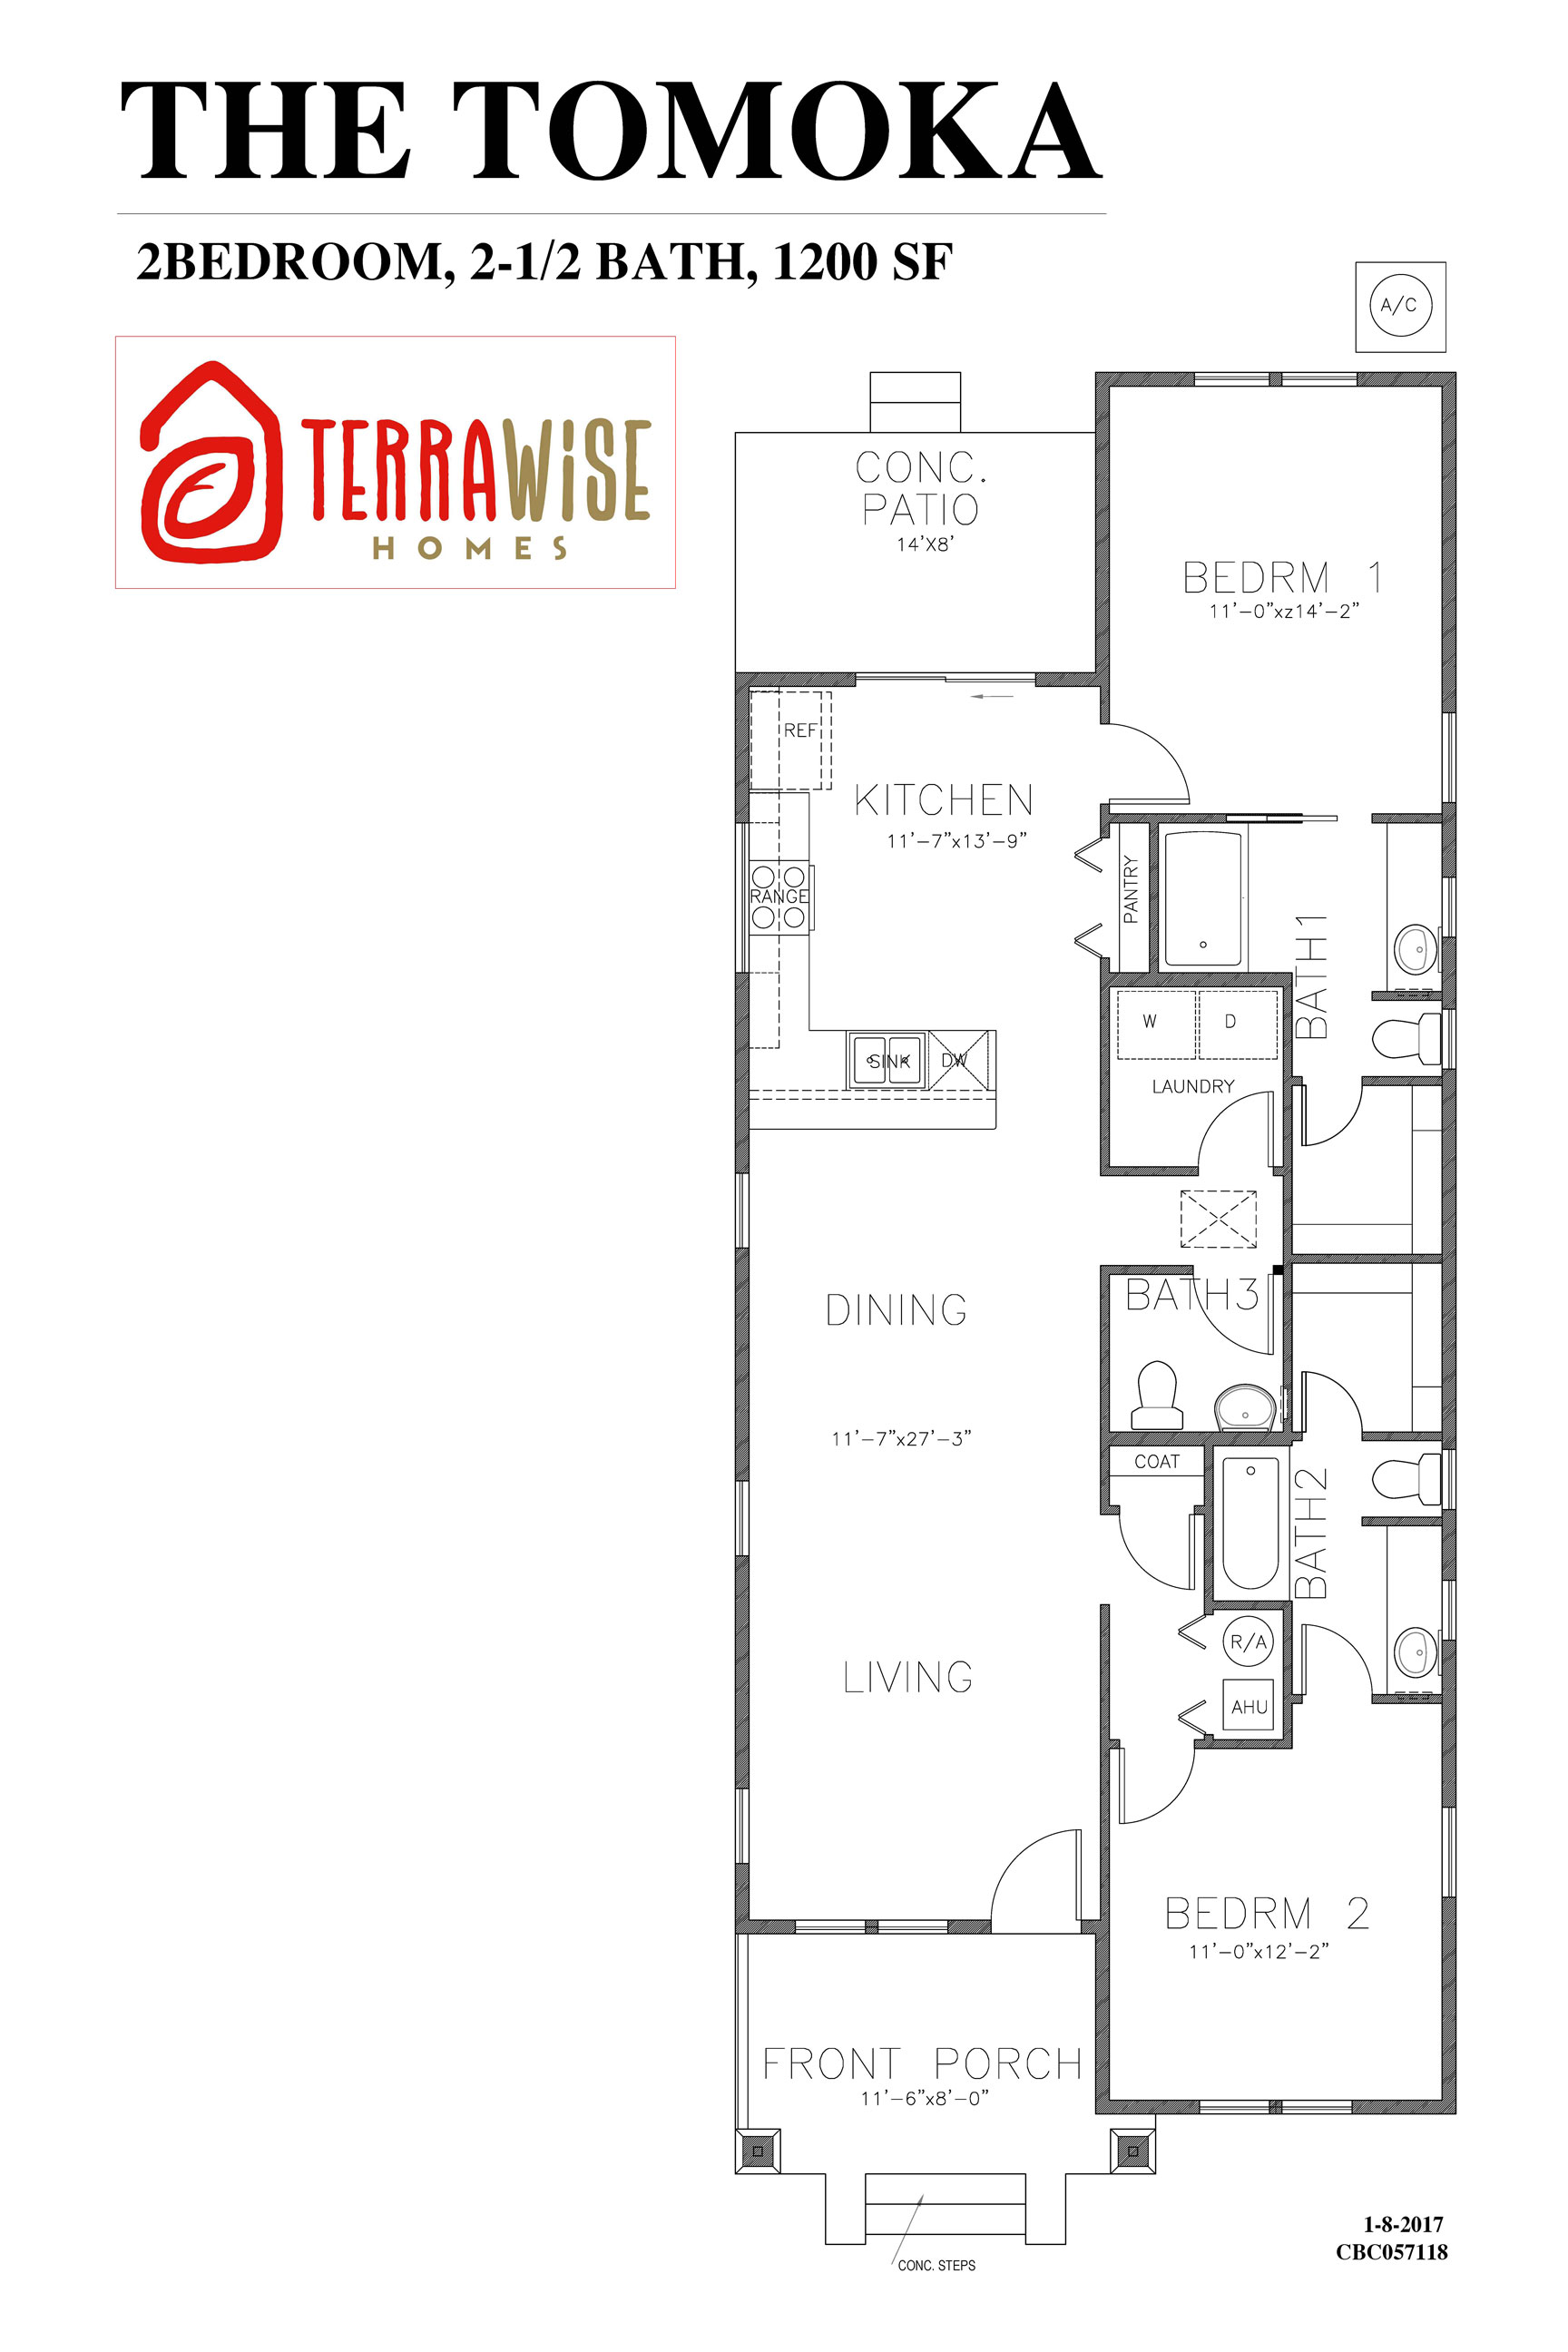 TerraWise-Homes-Plans-Floorplan-Tomoka-1200-sm